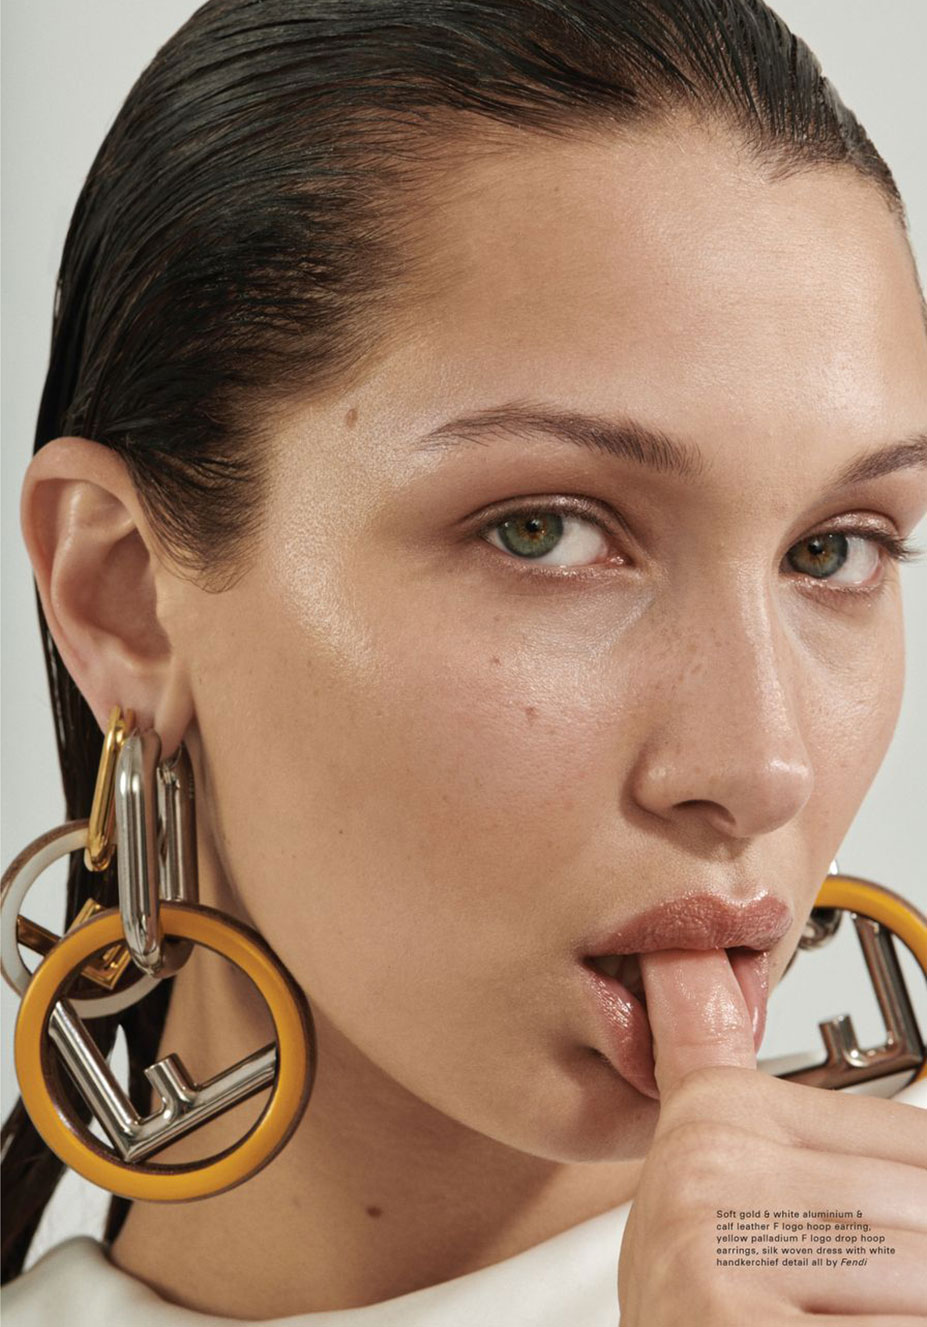 Bella Hadid by Stevie Dance - Pop Magazine issue 49 fall/winter 2018/19